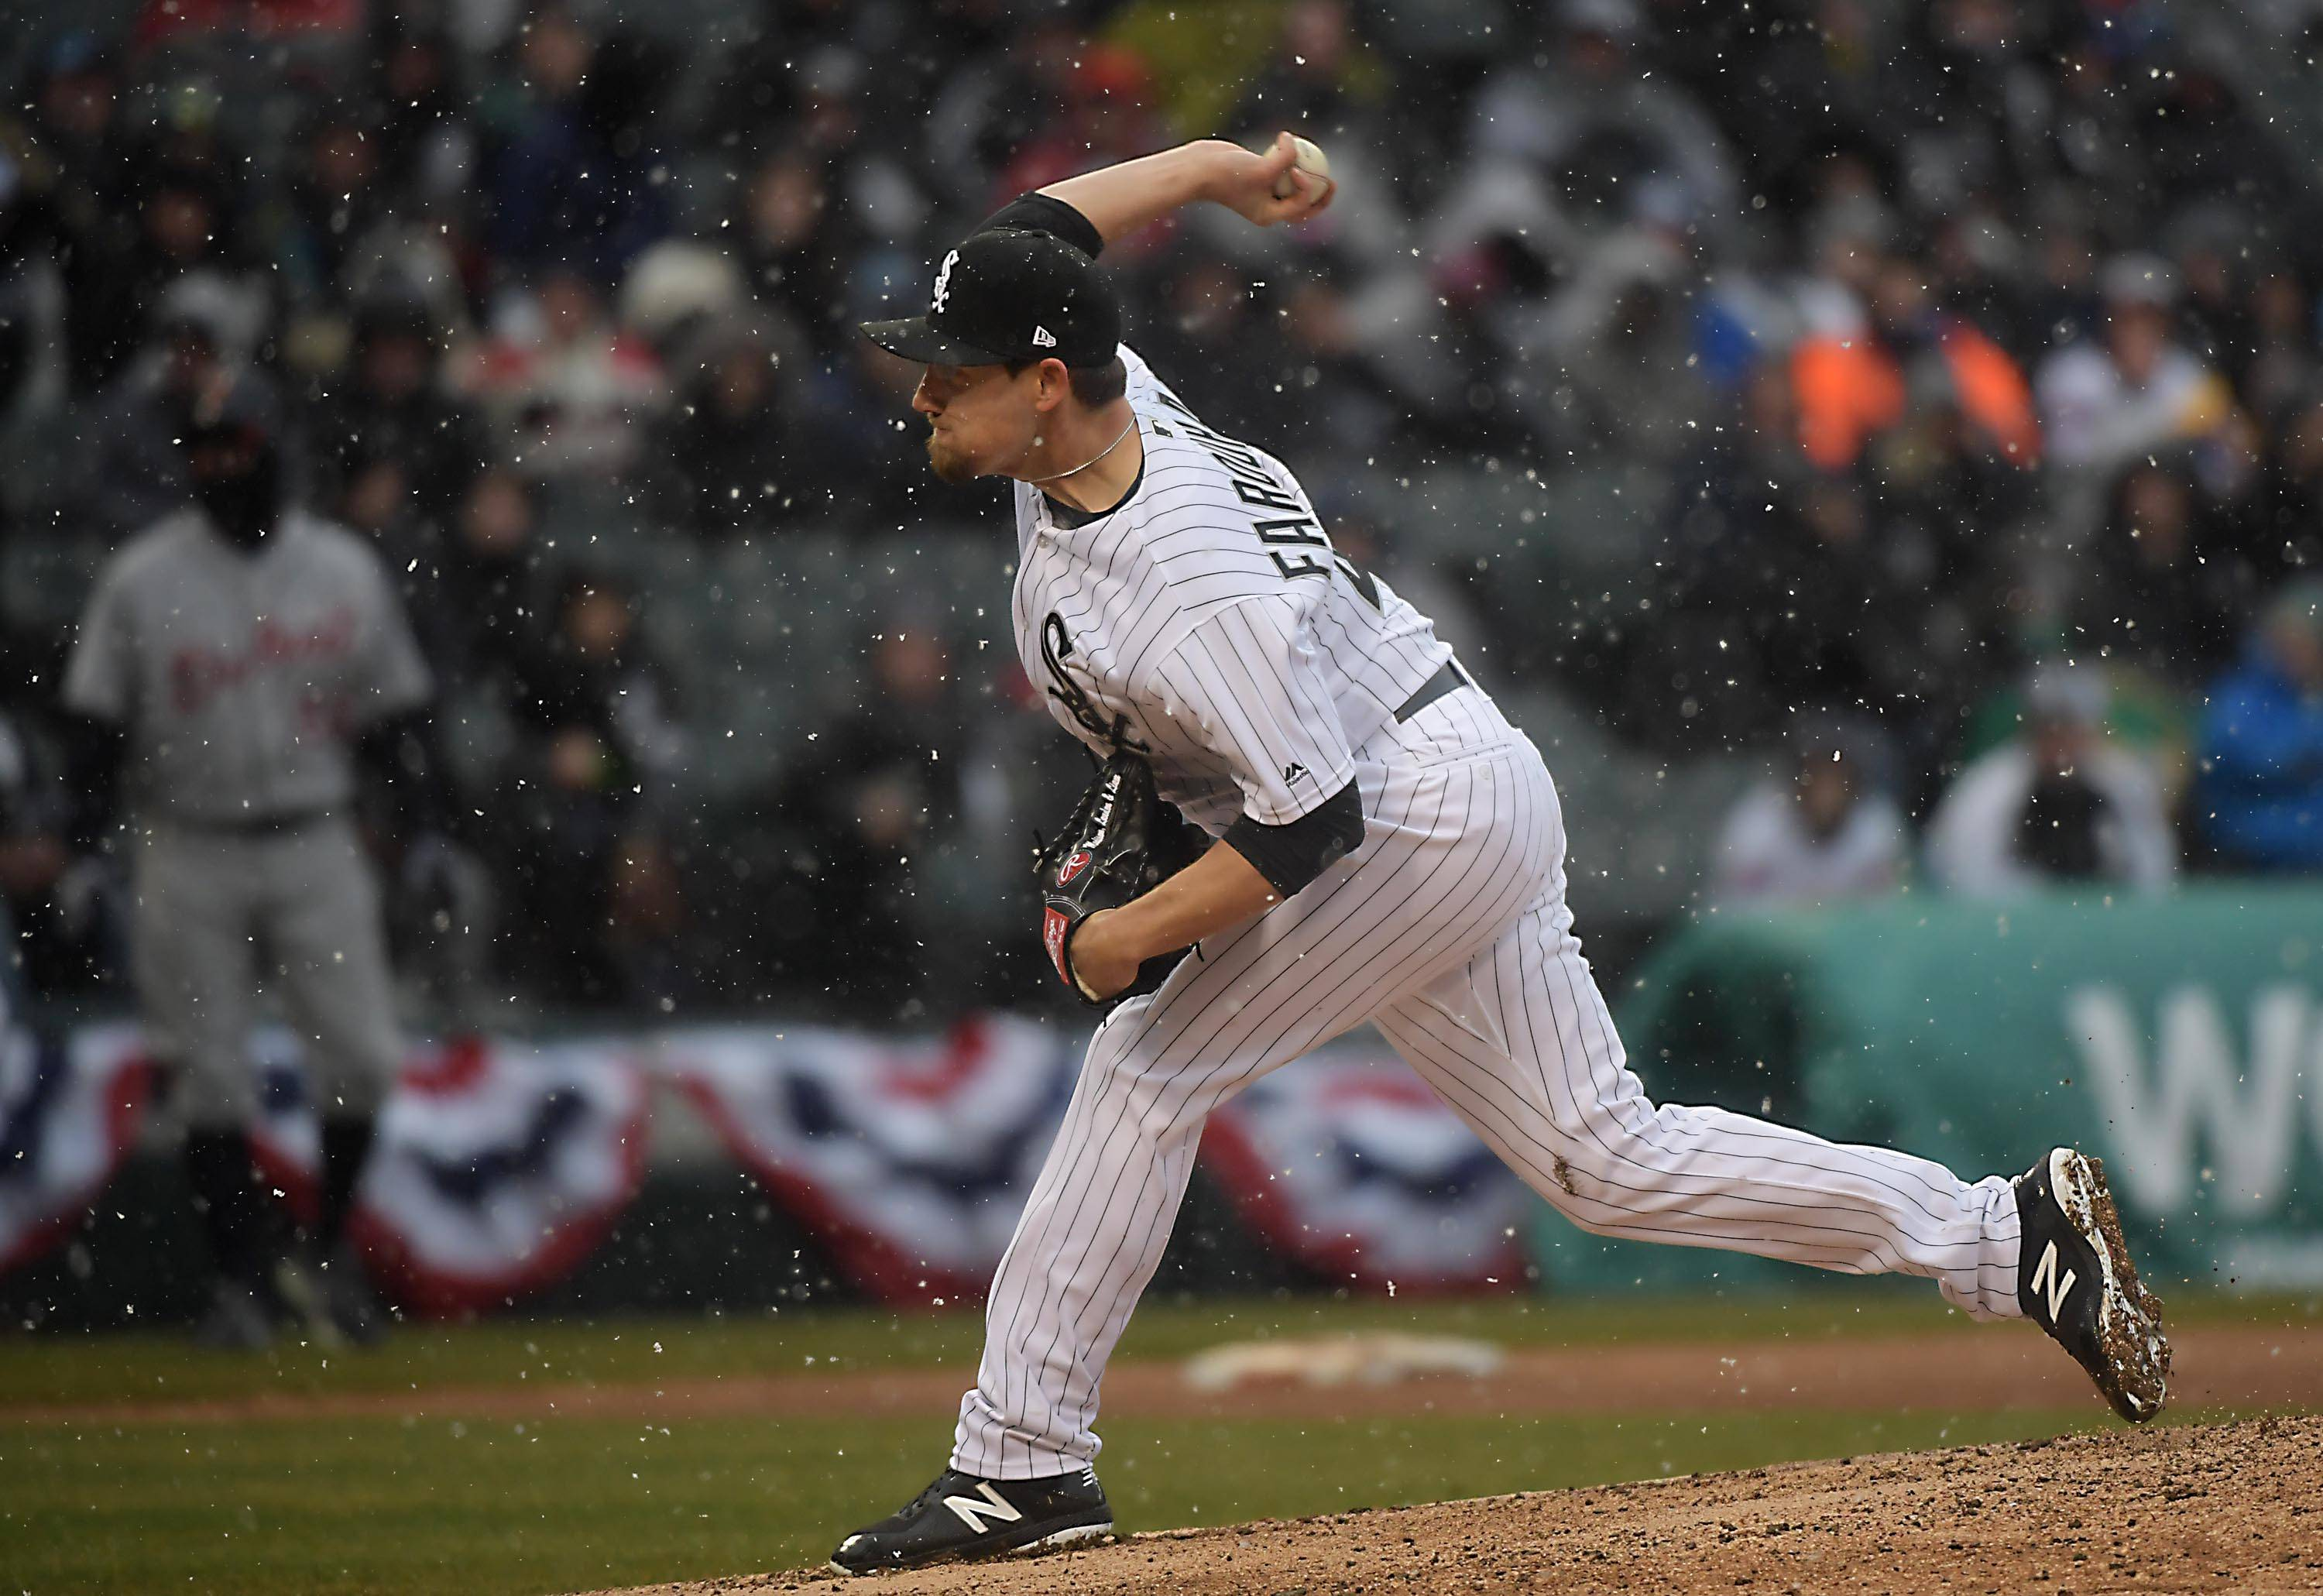 Chicago White Sox relief pitcher Danny Farquhar, shown here during the home opener earlier this month, was hospitalized Friday night after suffering a brain hemorrhage during the game against the Houston Astros.